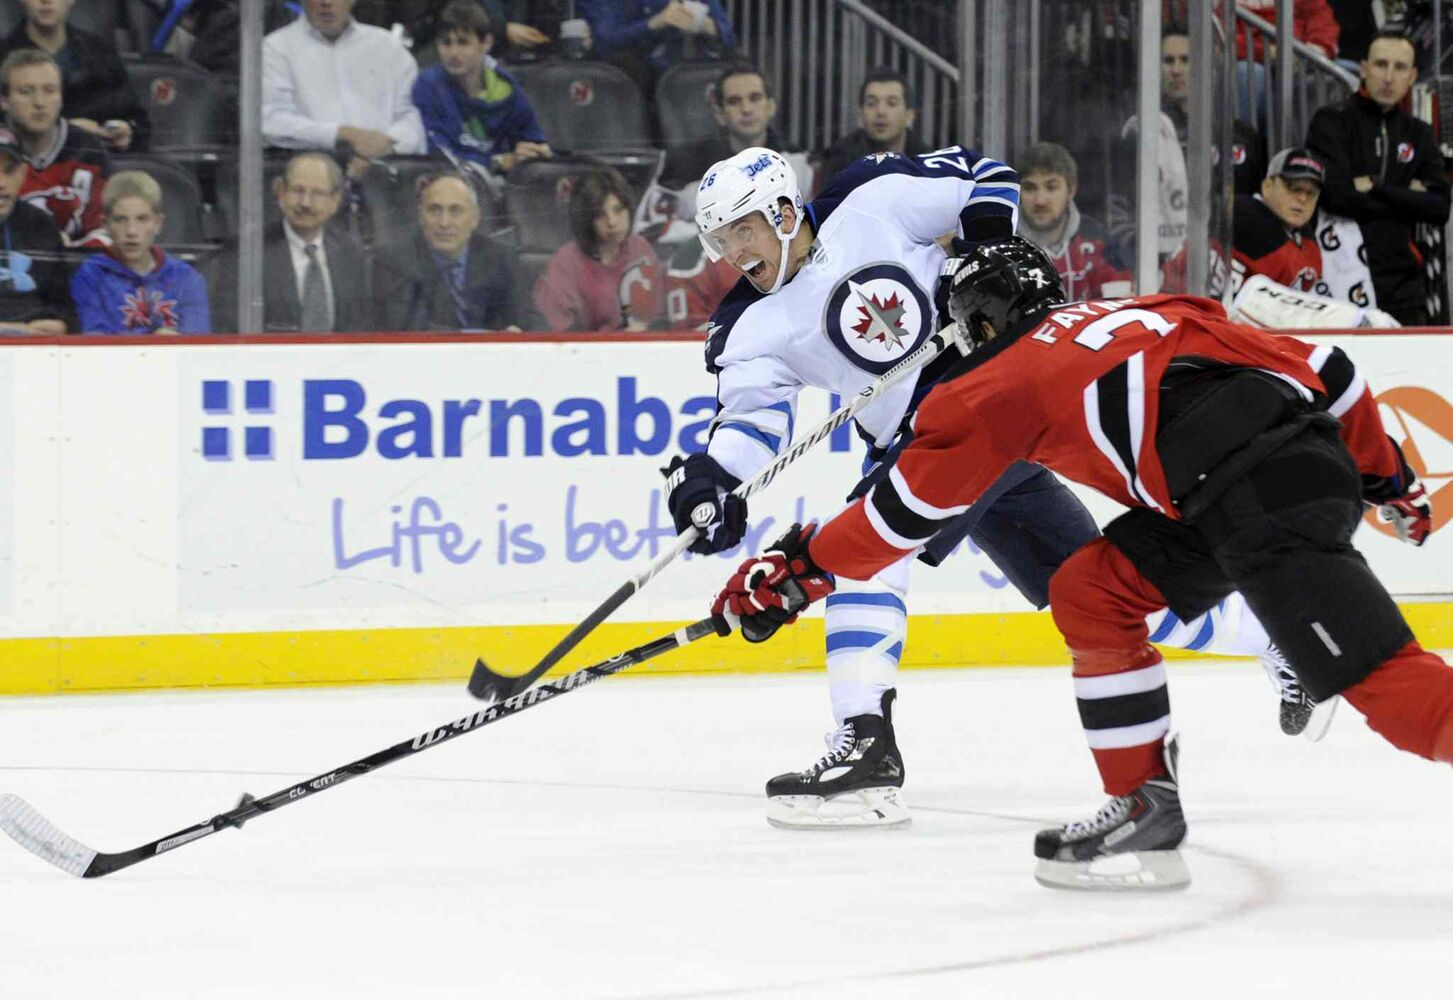 Winnipeg Jets forward Blake Wheeler takes a shot as New Jersey Devils' Mark Fayne attempts to get a stick on it during the first period.